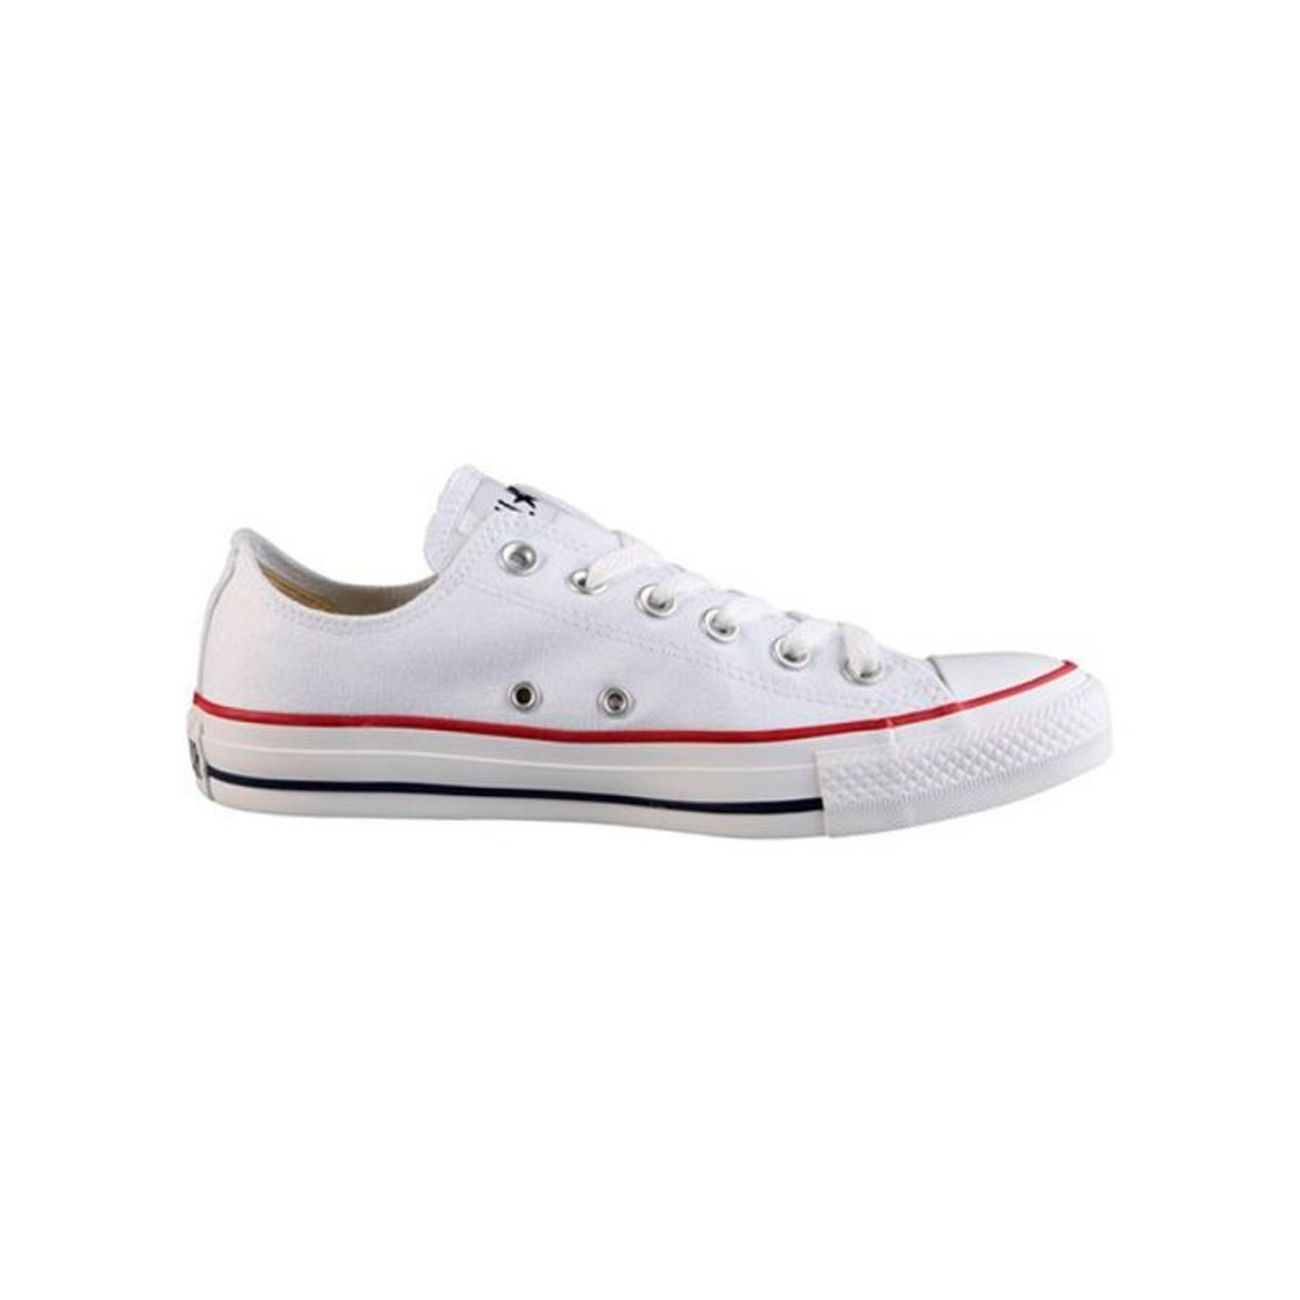 Mode Lifestyle homme CONVERSE Converse All Star Chuck Taylor Ox Blanc